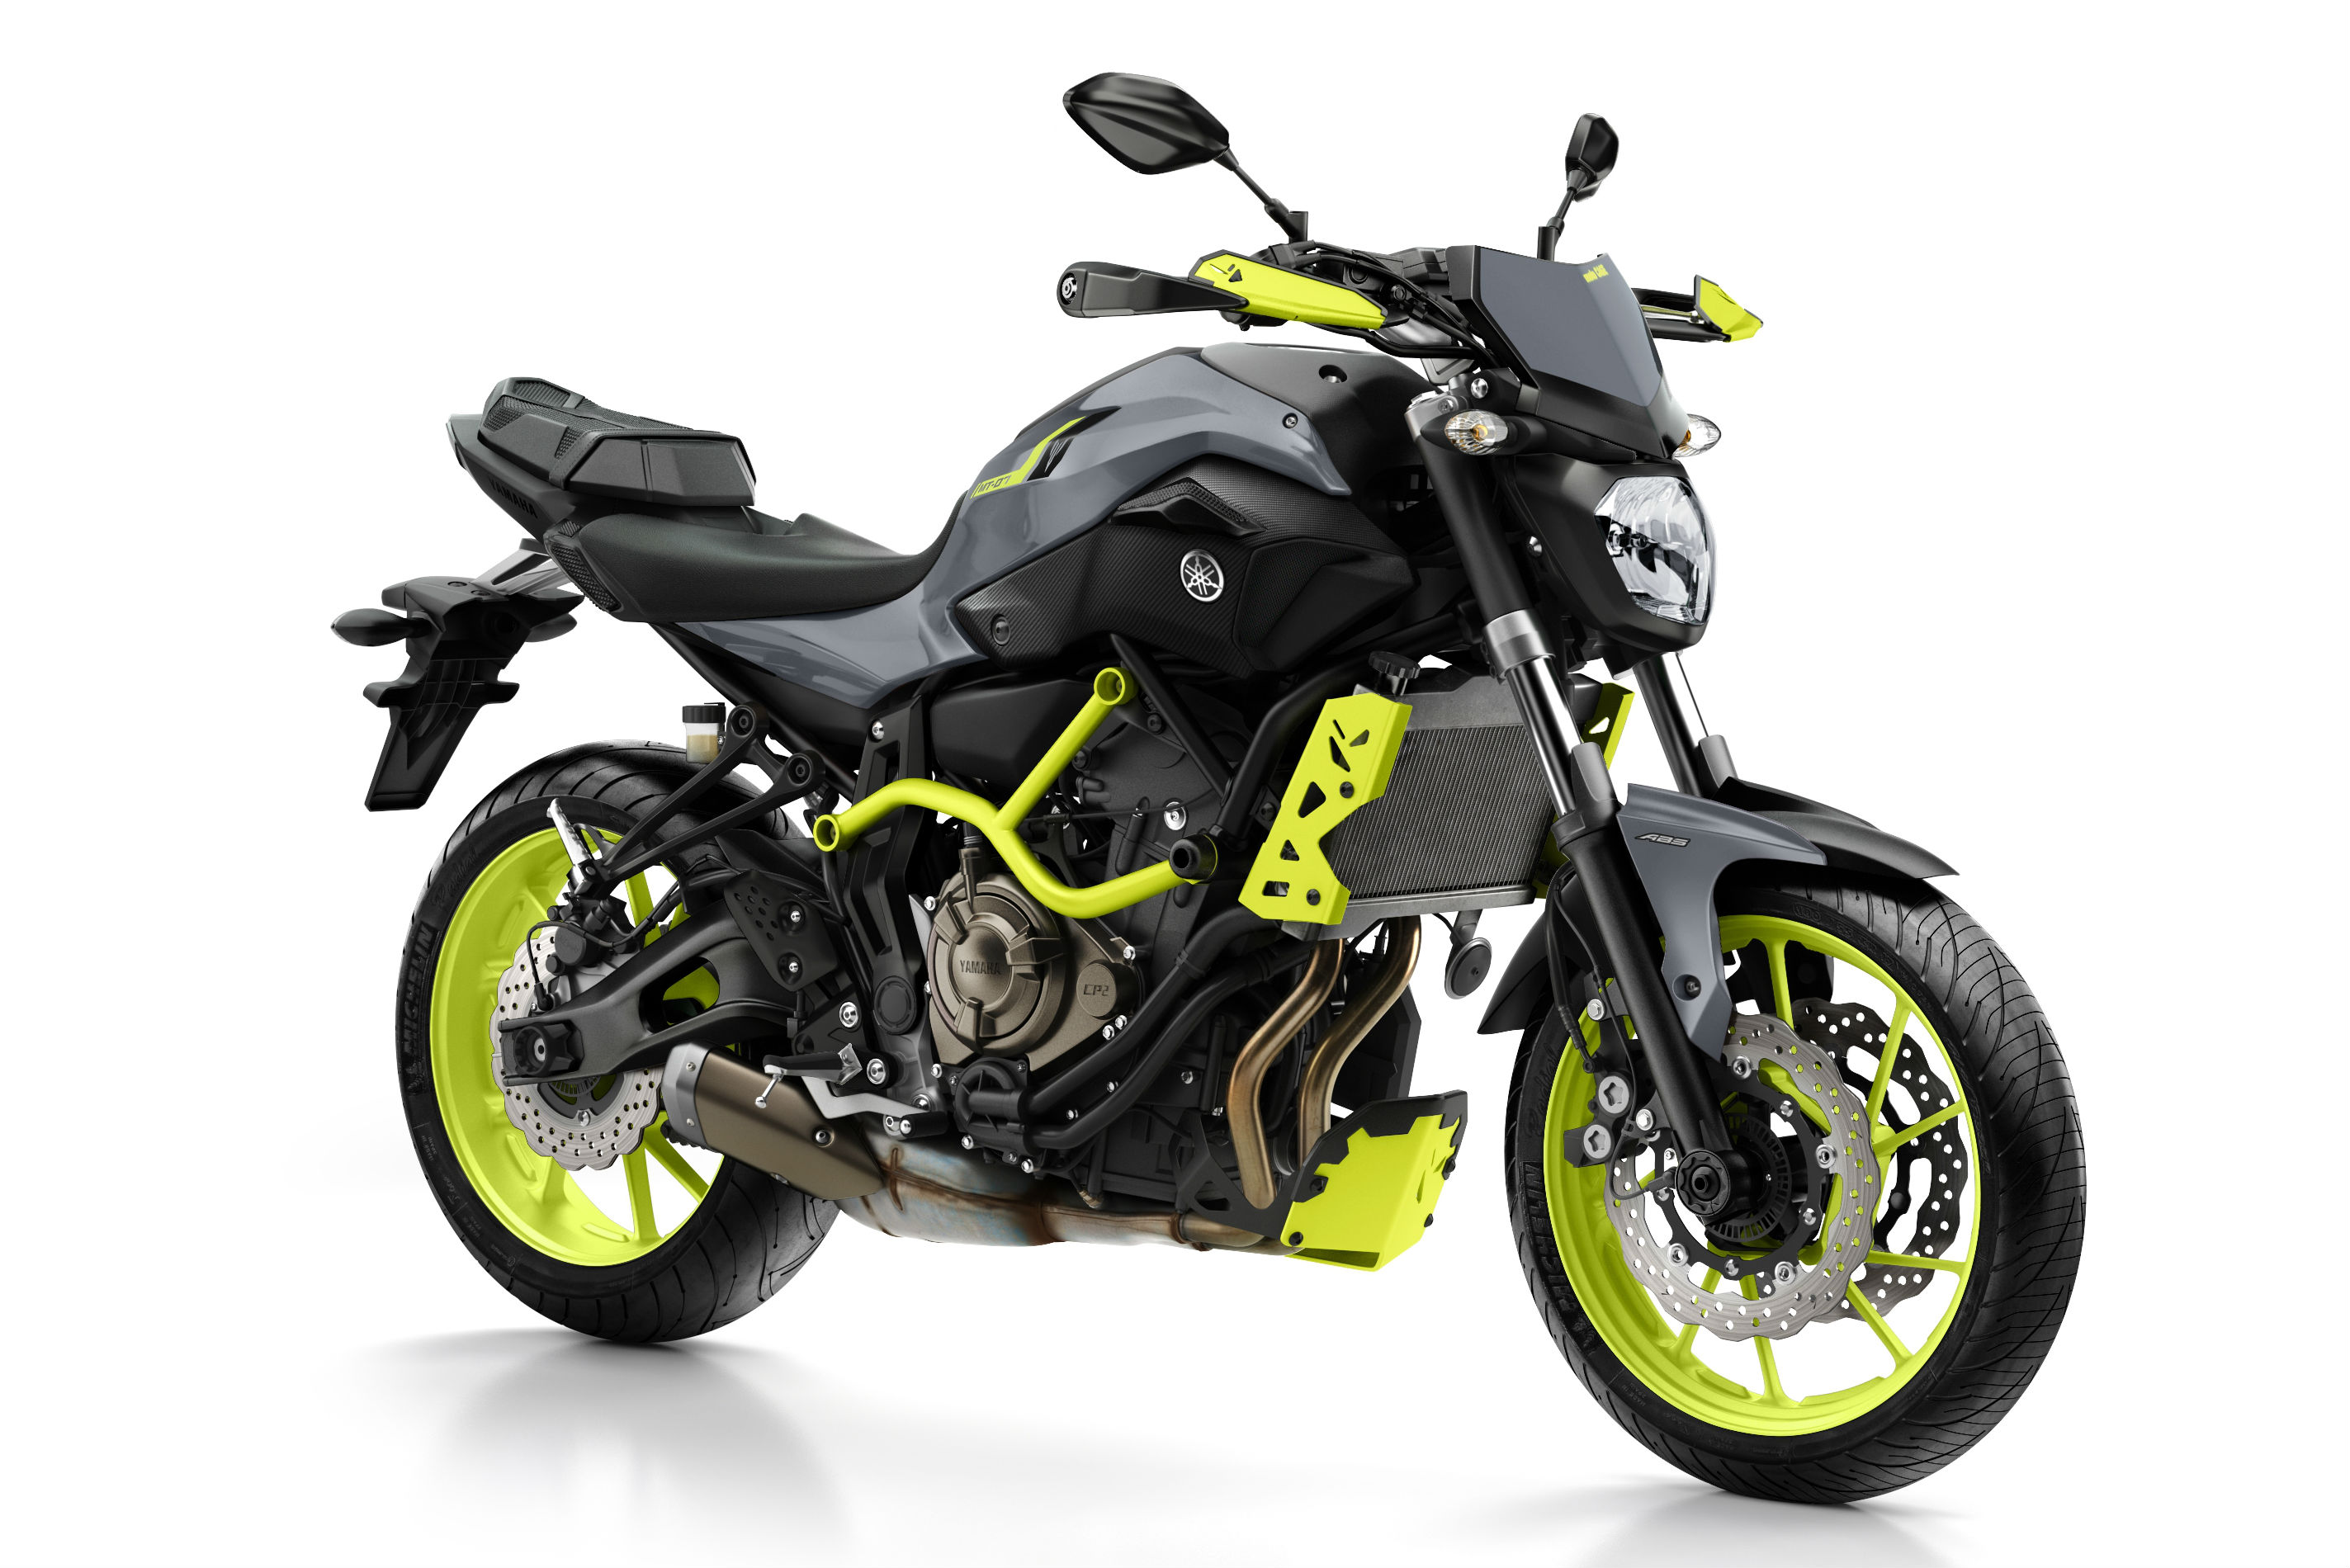 yamaha mt 07 moto cage 39 night fluo 39 revealed visordown. Black Bedroom Furniture Sets. Home Design Ideas